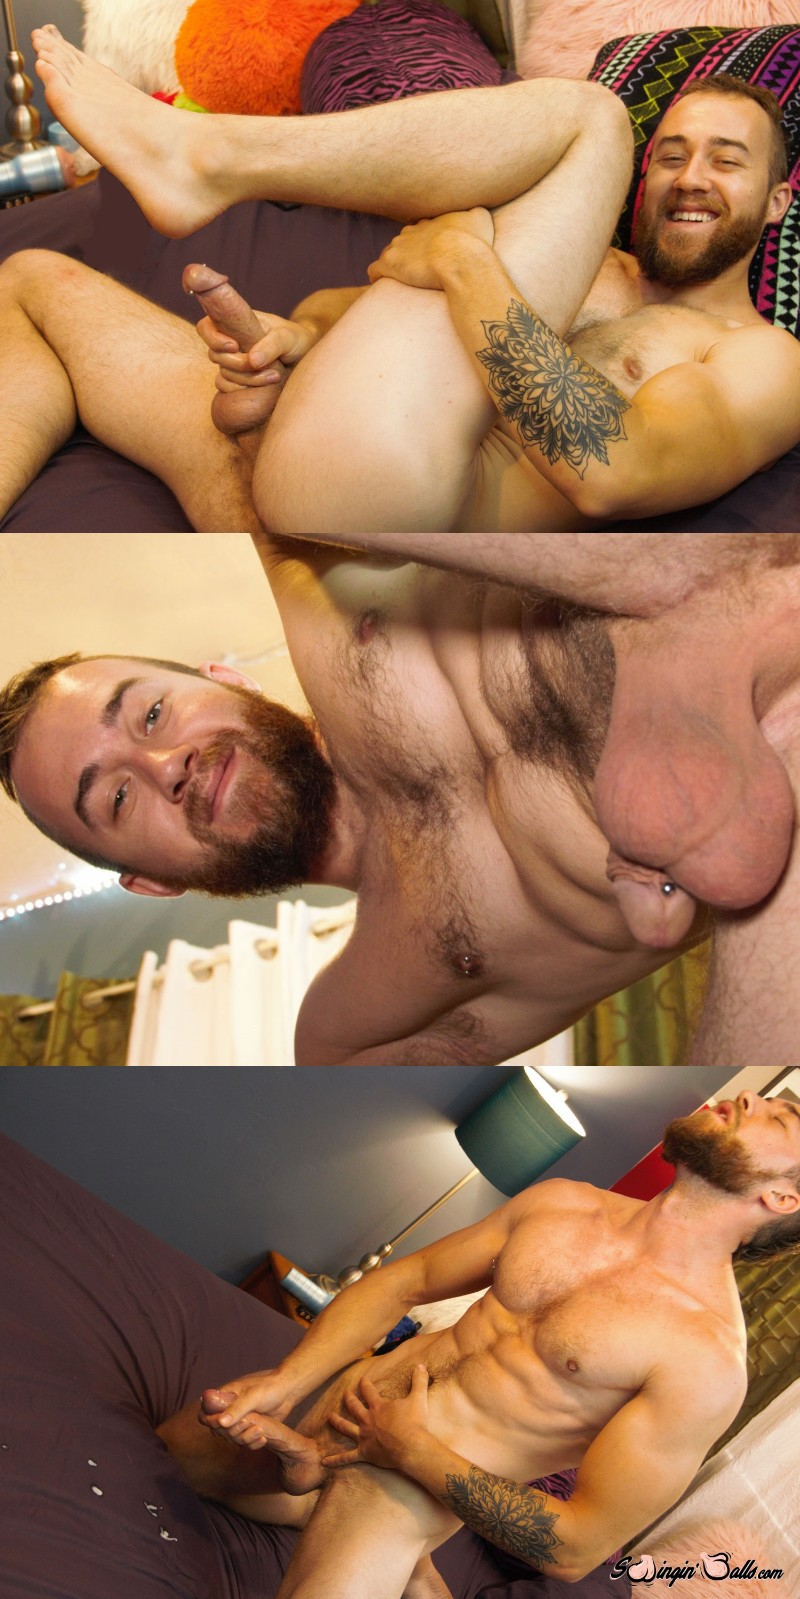 Scruffy John Powers Kneads His Nuts at New Site Swingin' Balls